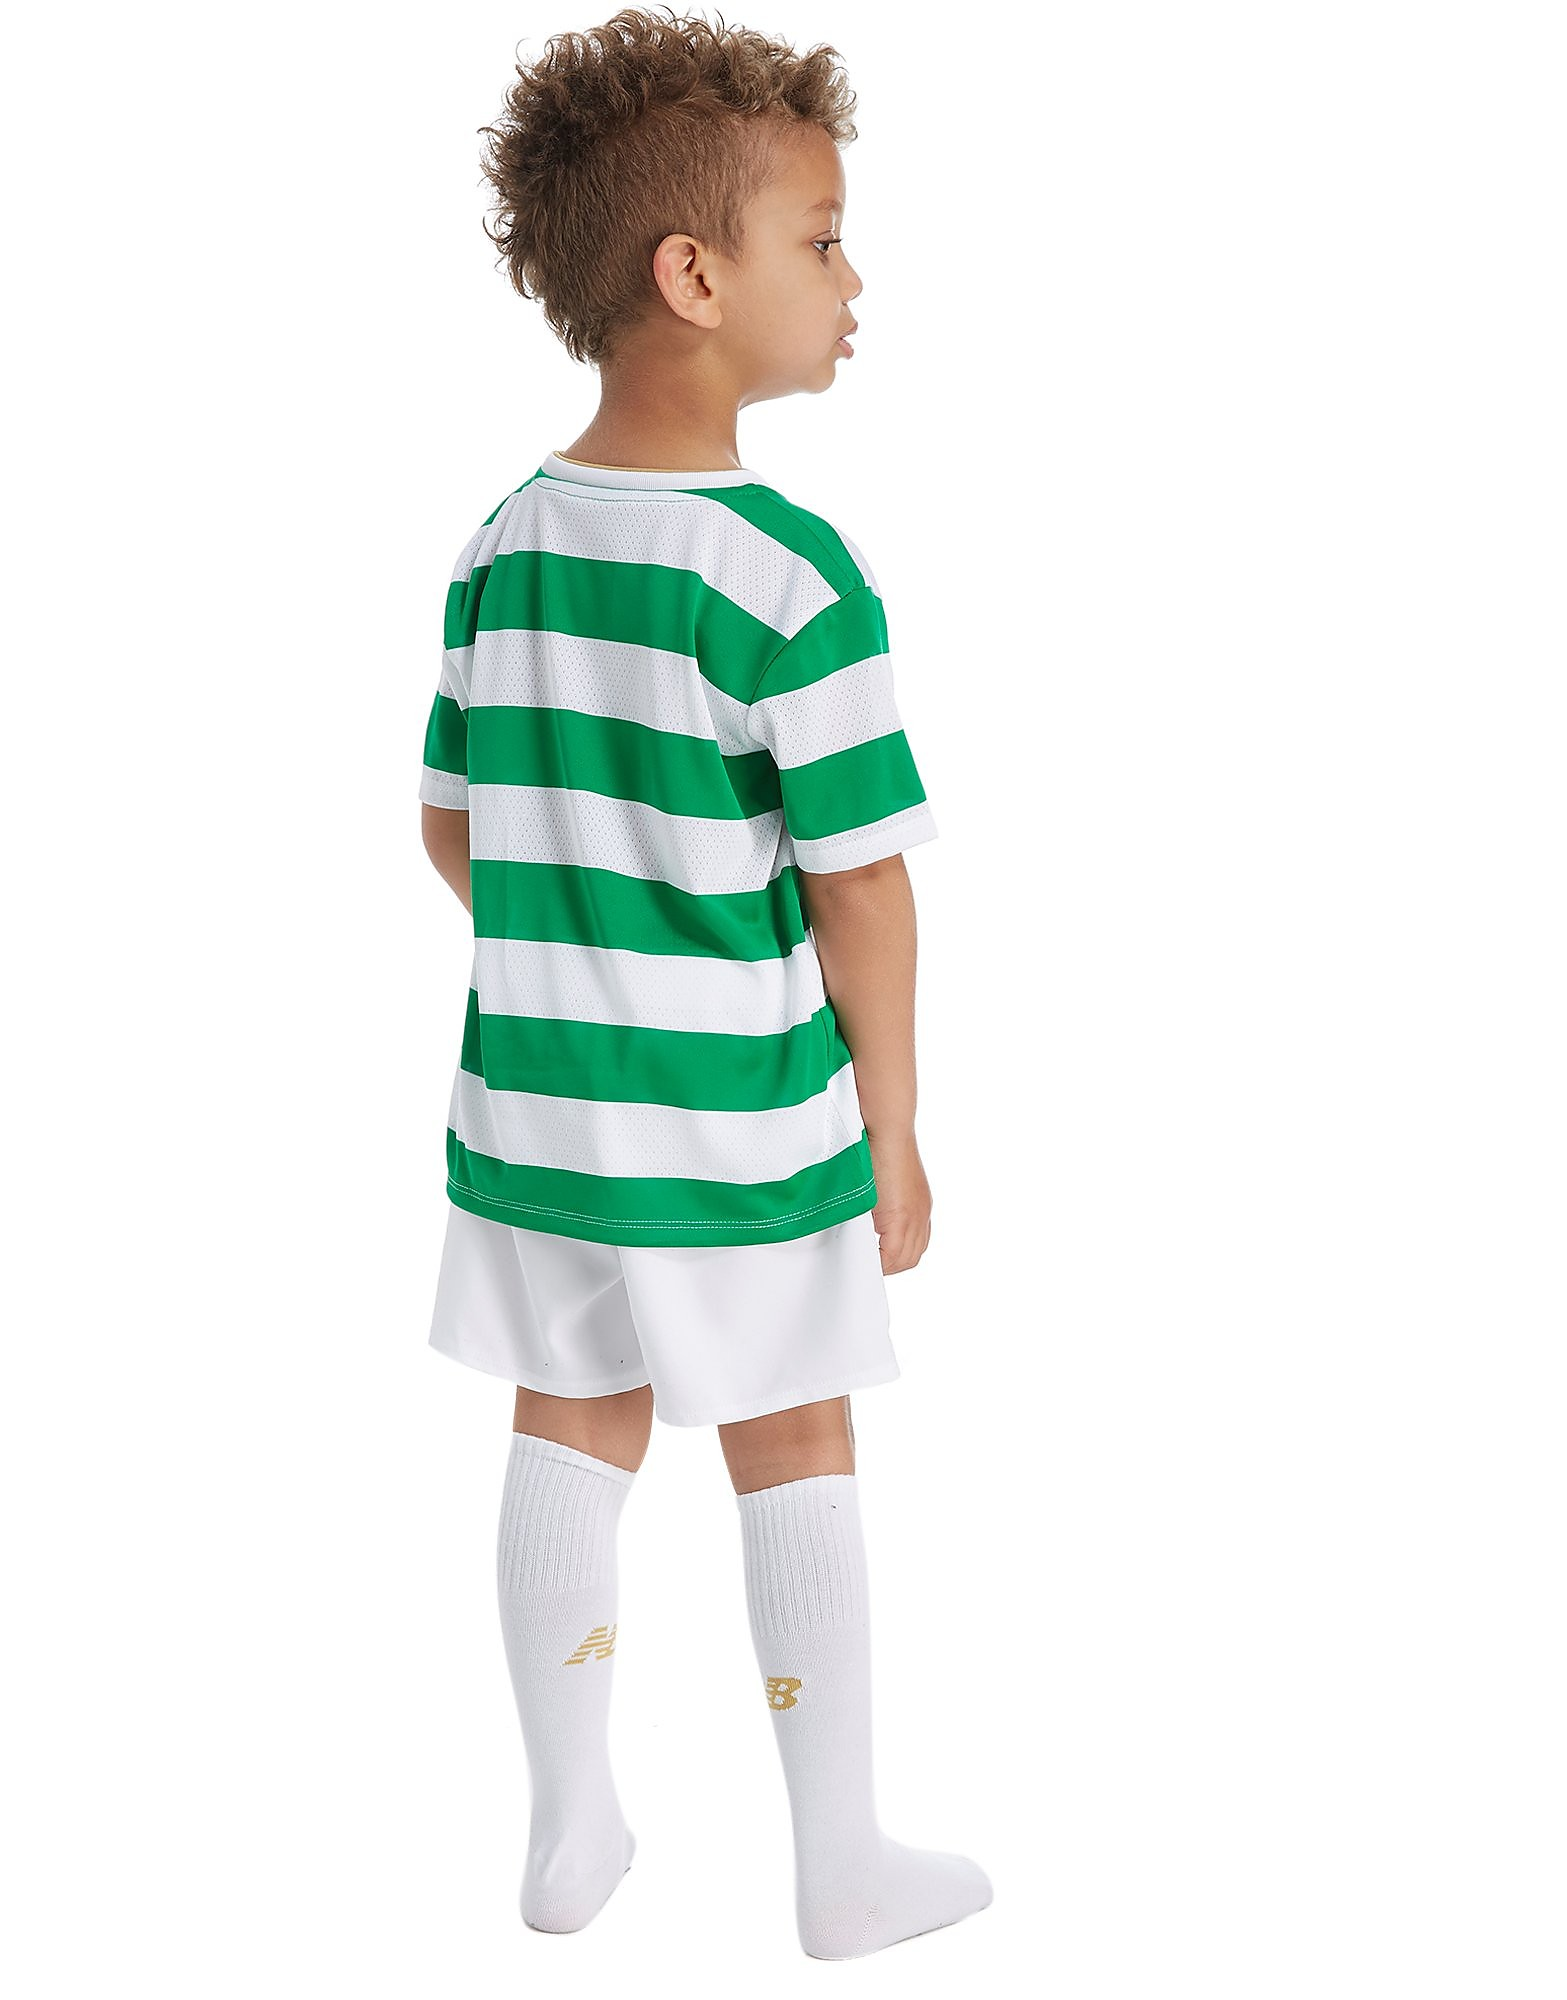 New Balance Celtic FC 2017/18 Home Kit Children PRE ORDER